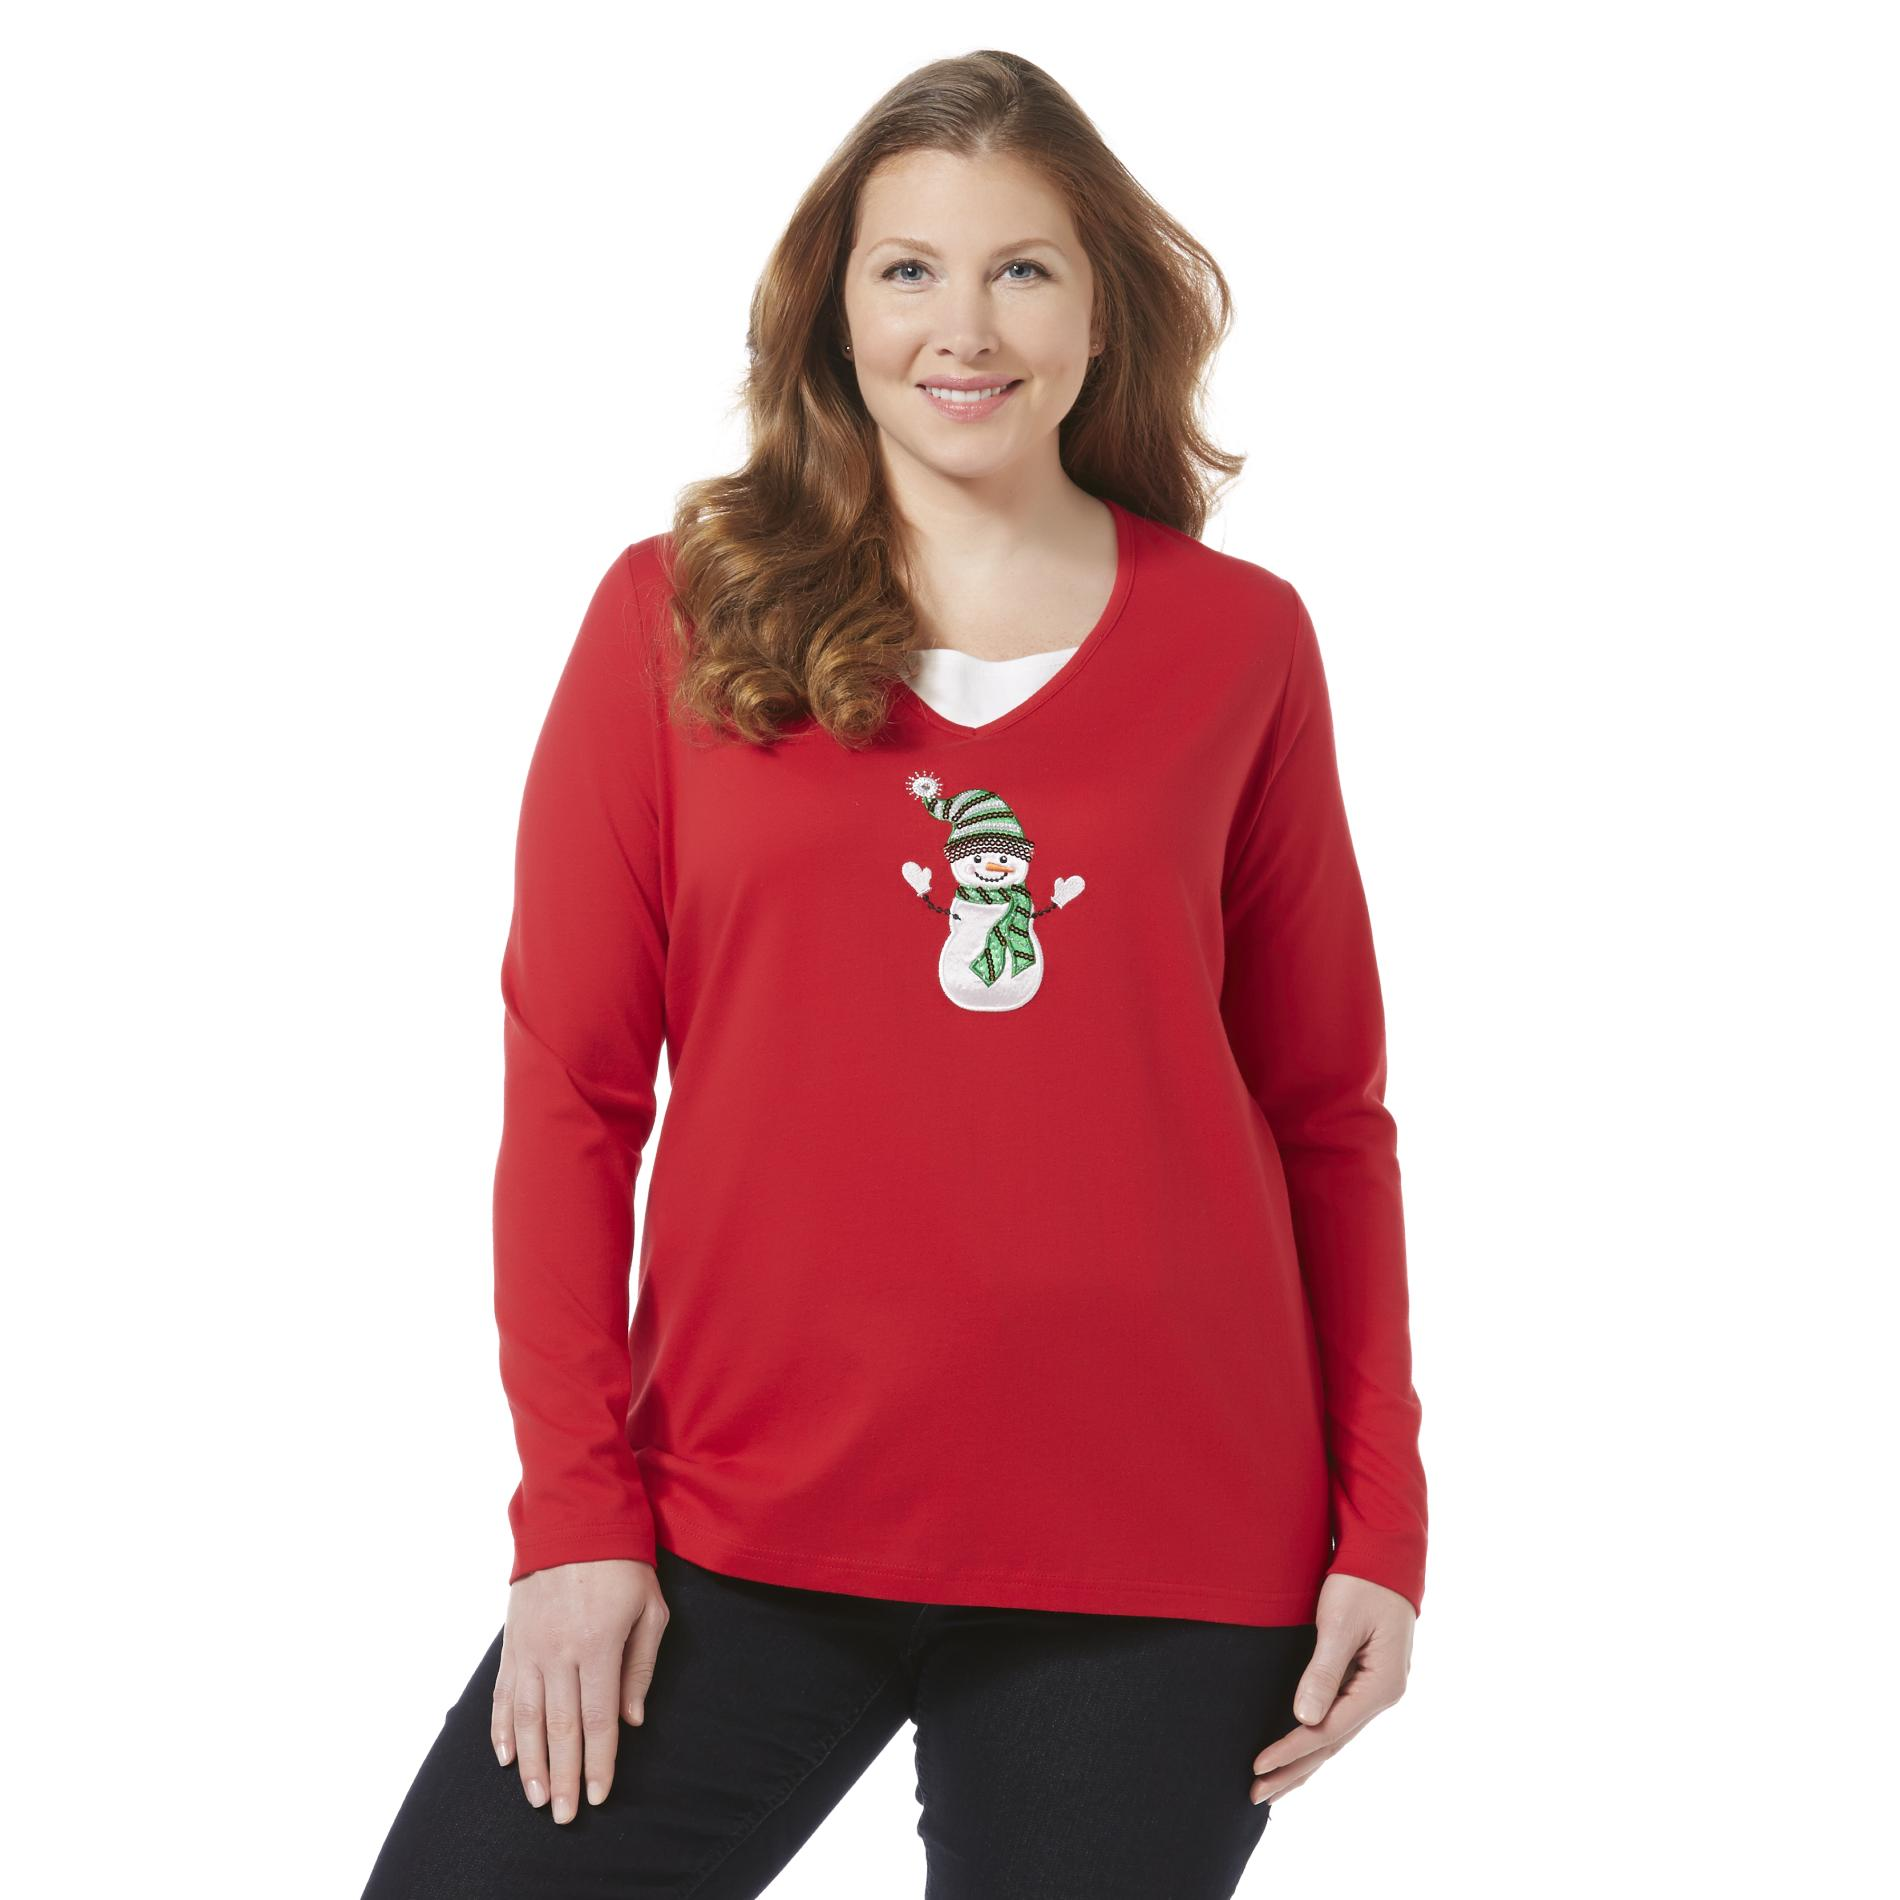 Holiday Editions Women's Plus Embellished T-Shirt - Snowman